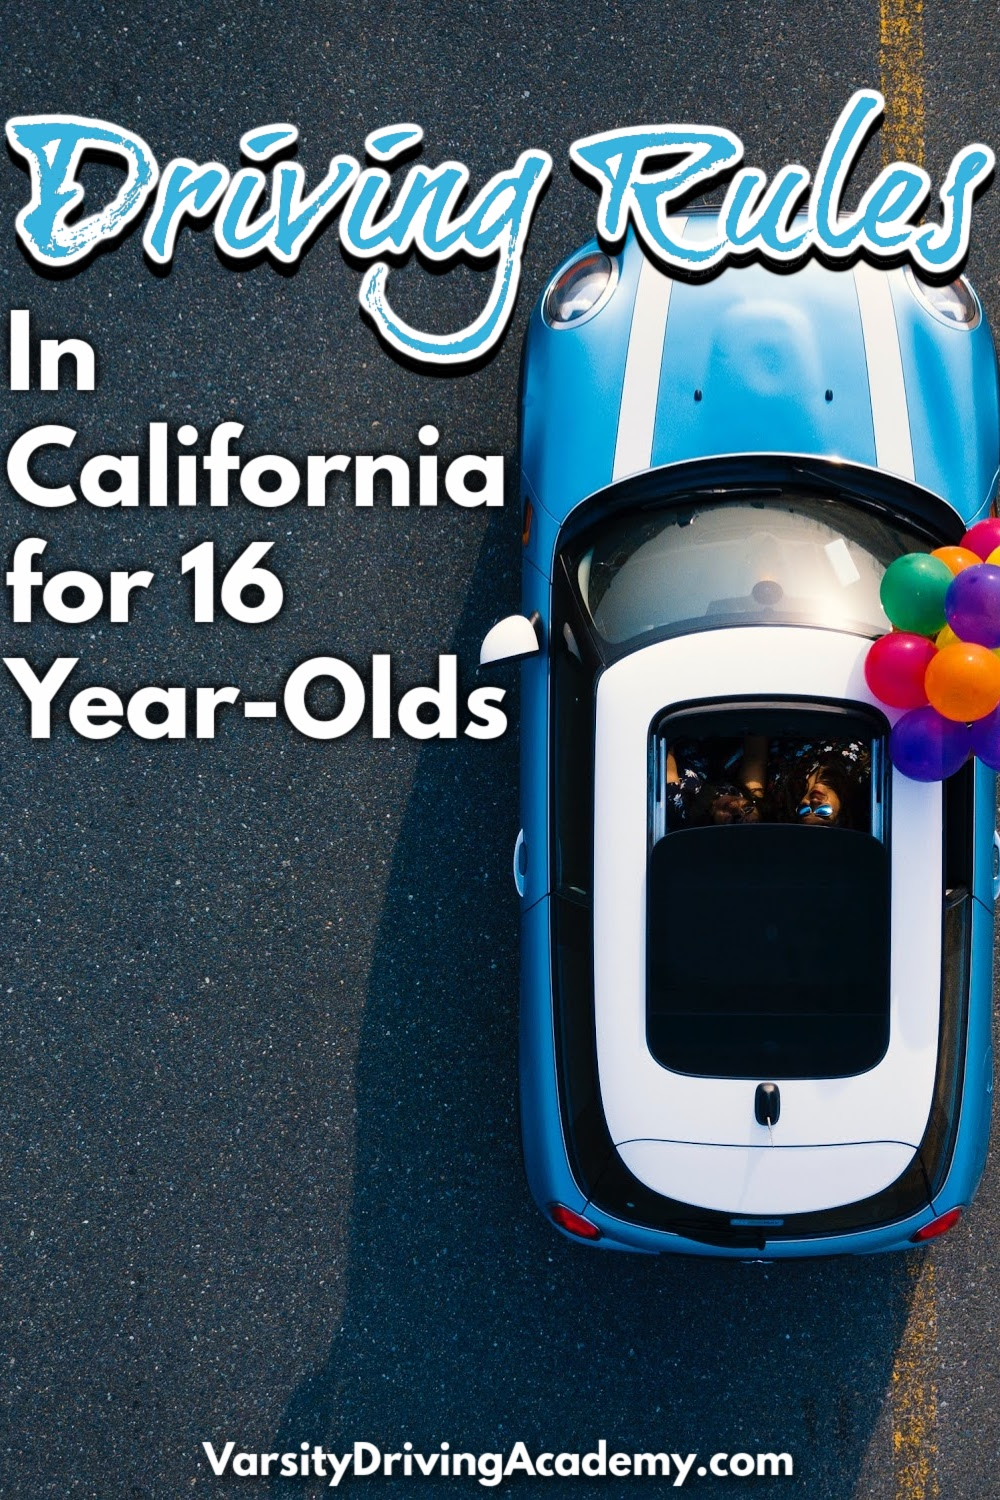 There are specific California driving rules for 16 year olds to follow for a period of time after receiving a license that may help keep teens safe.